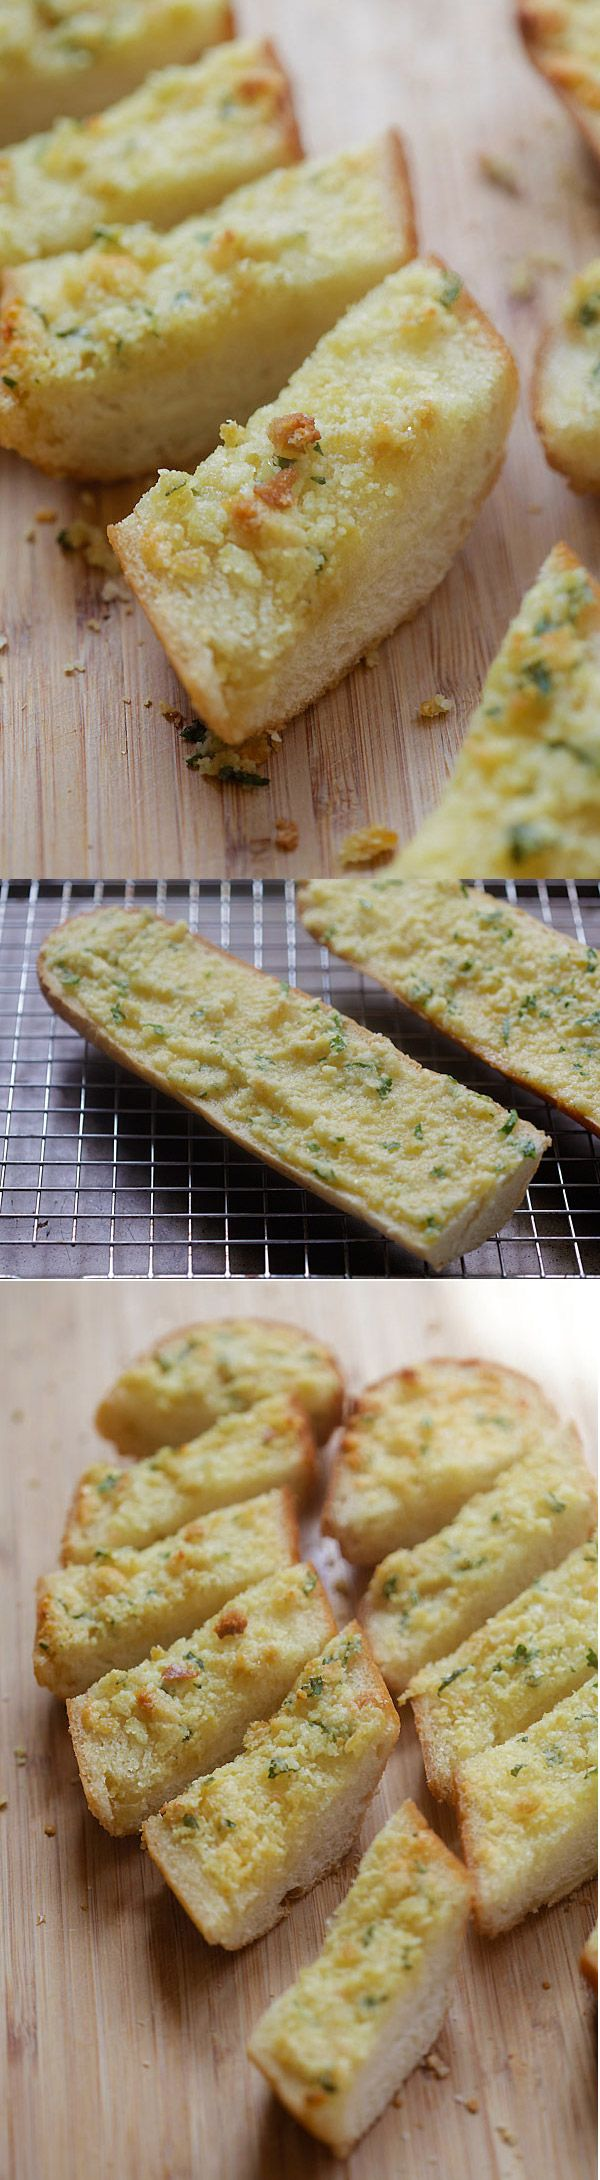 Parmesan Garlic Bread. A bit different than the garlic bread I make.